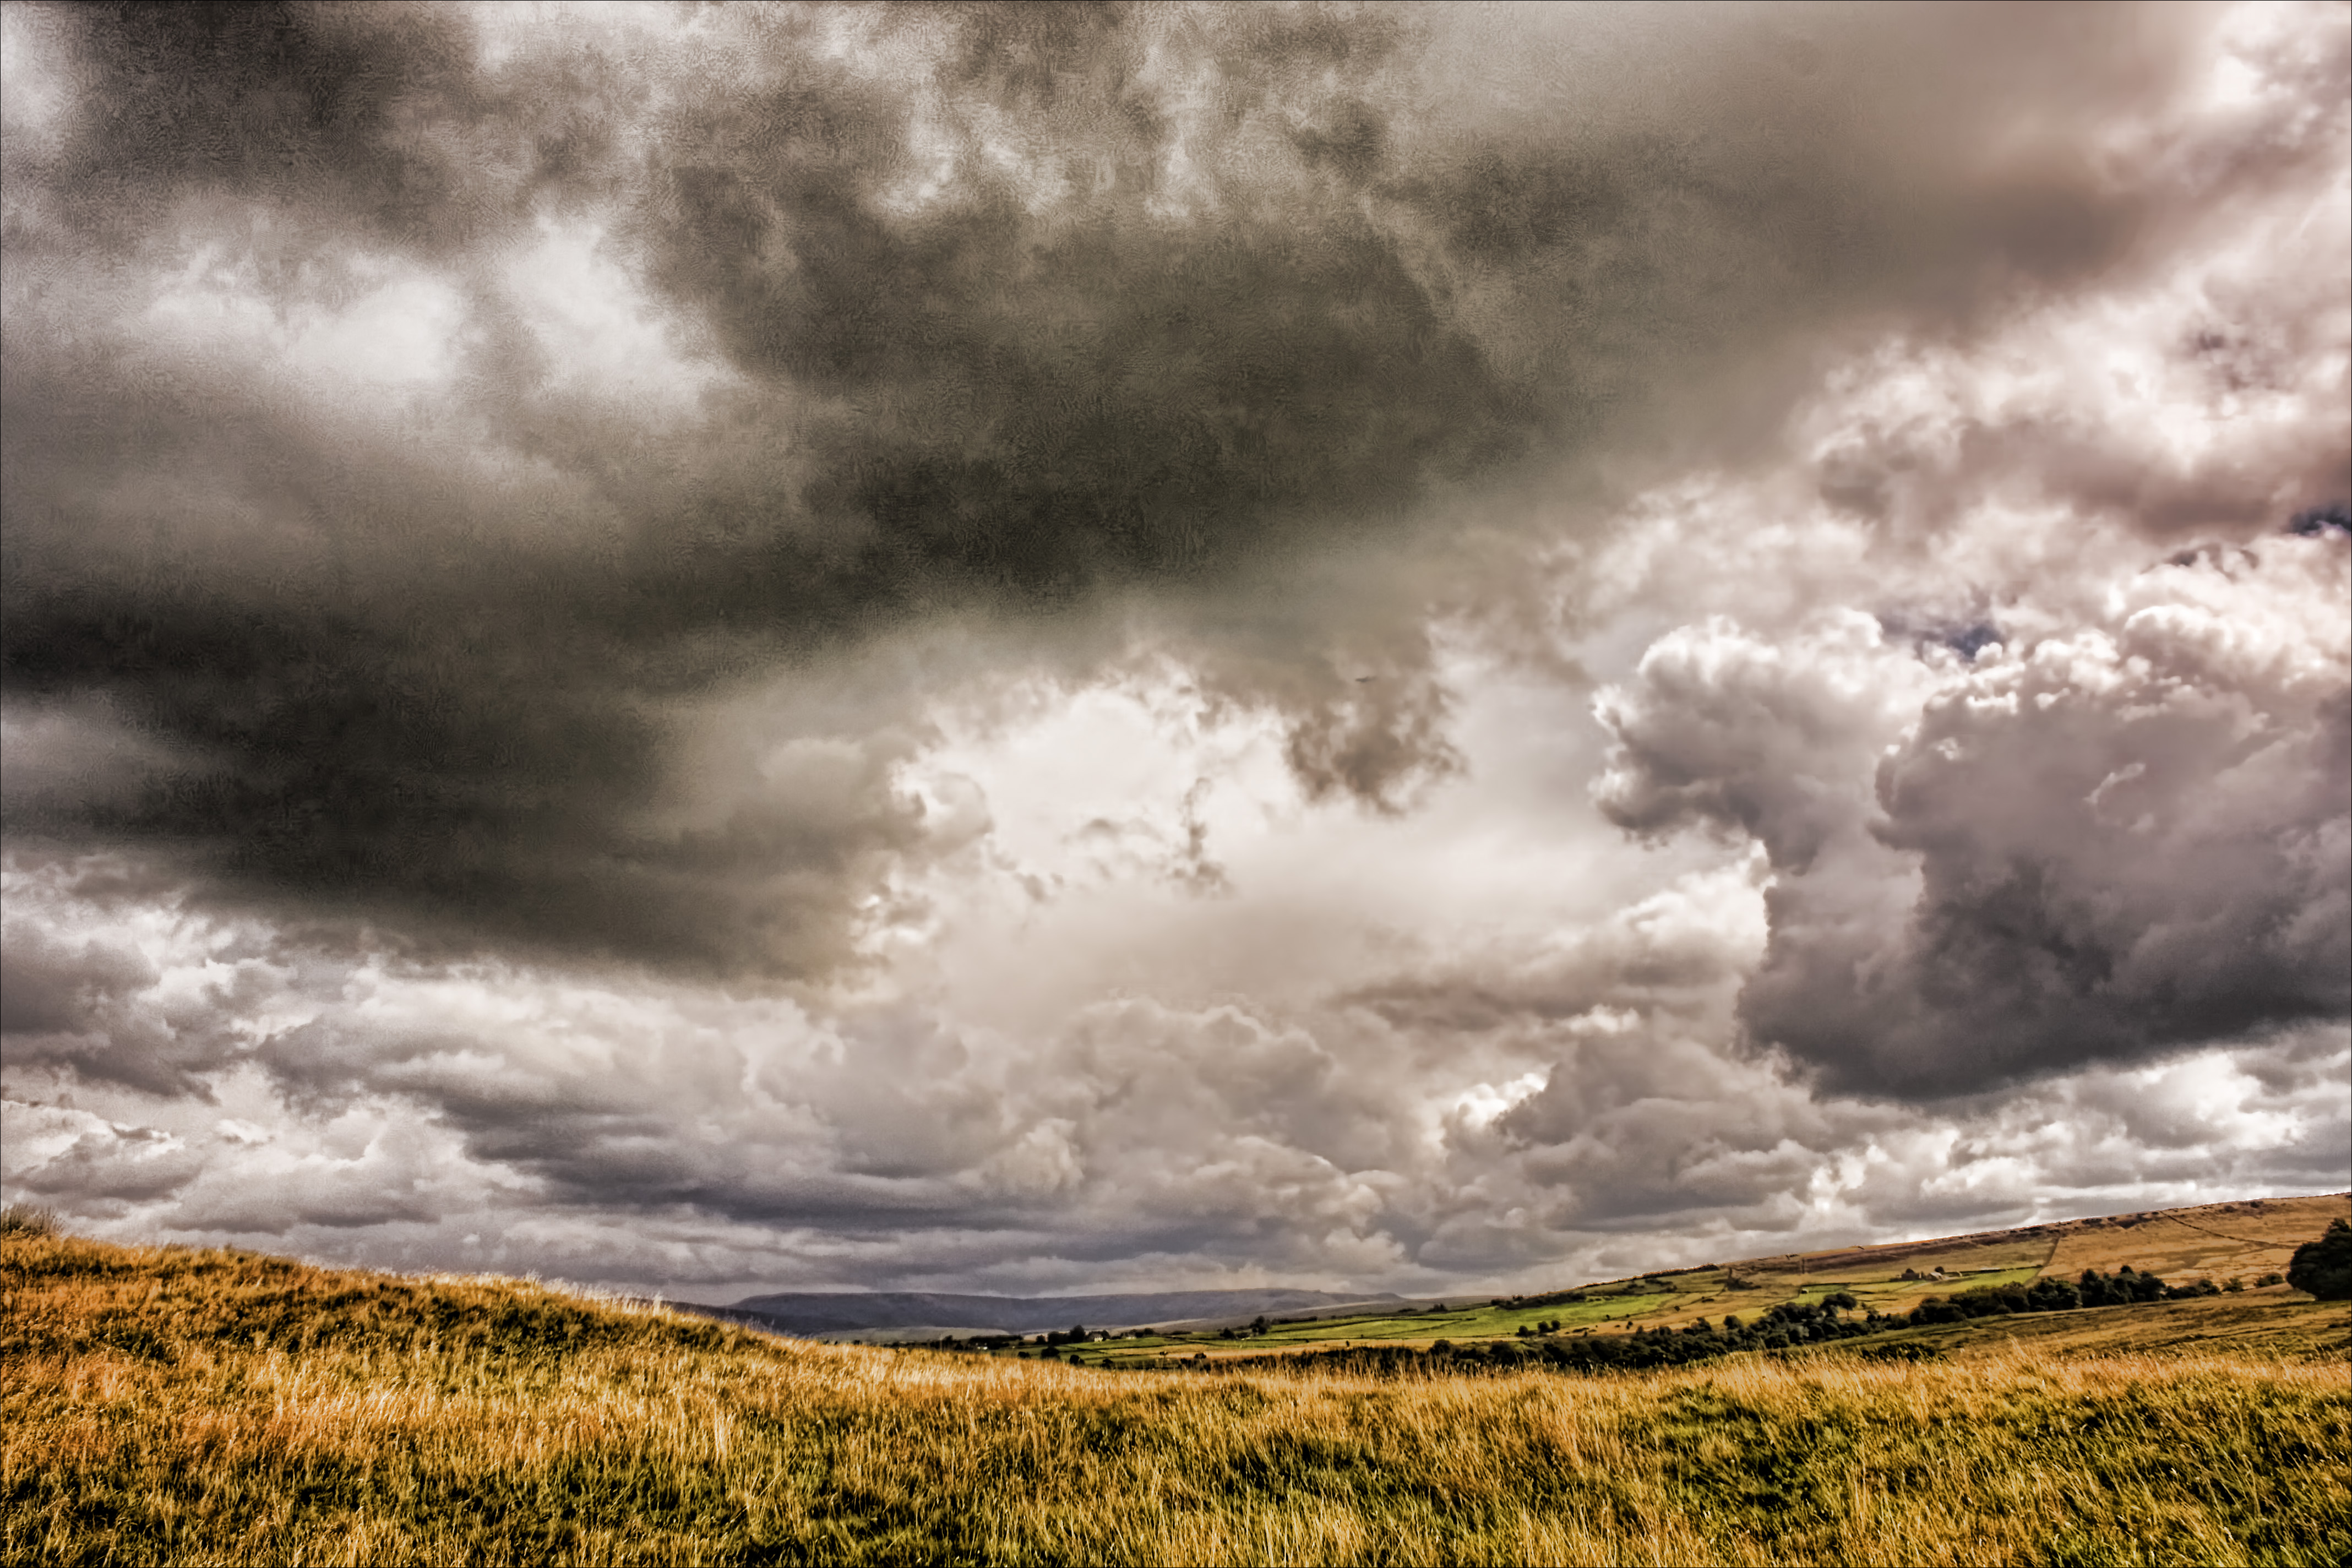 Storm clouds gathering - Topazed | Flickr - Photo Sharing!